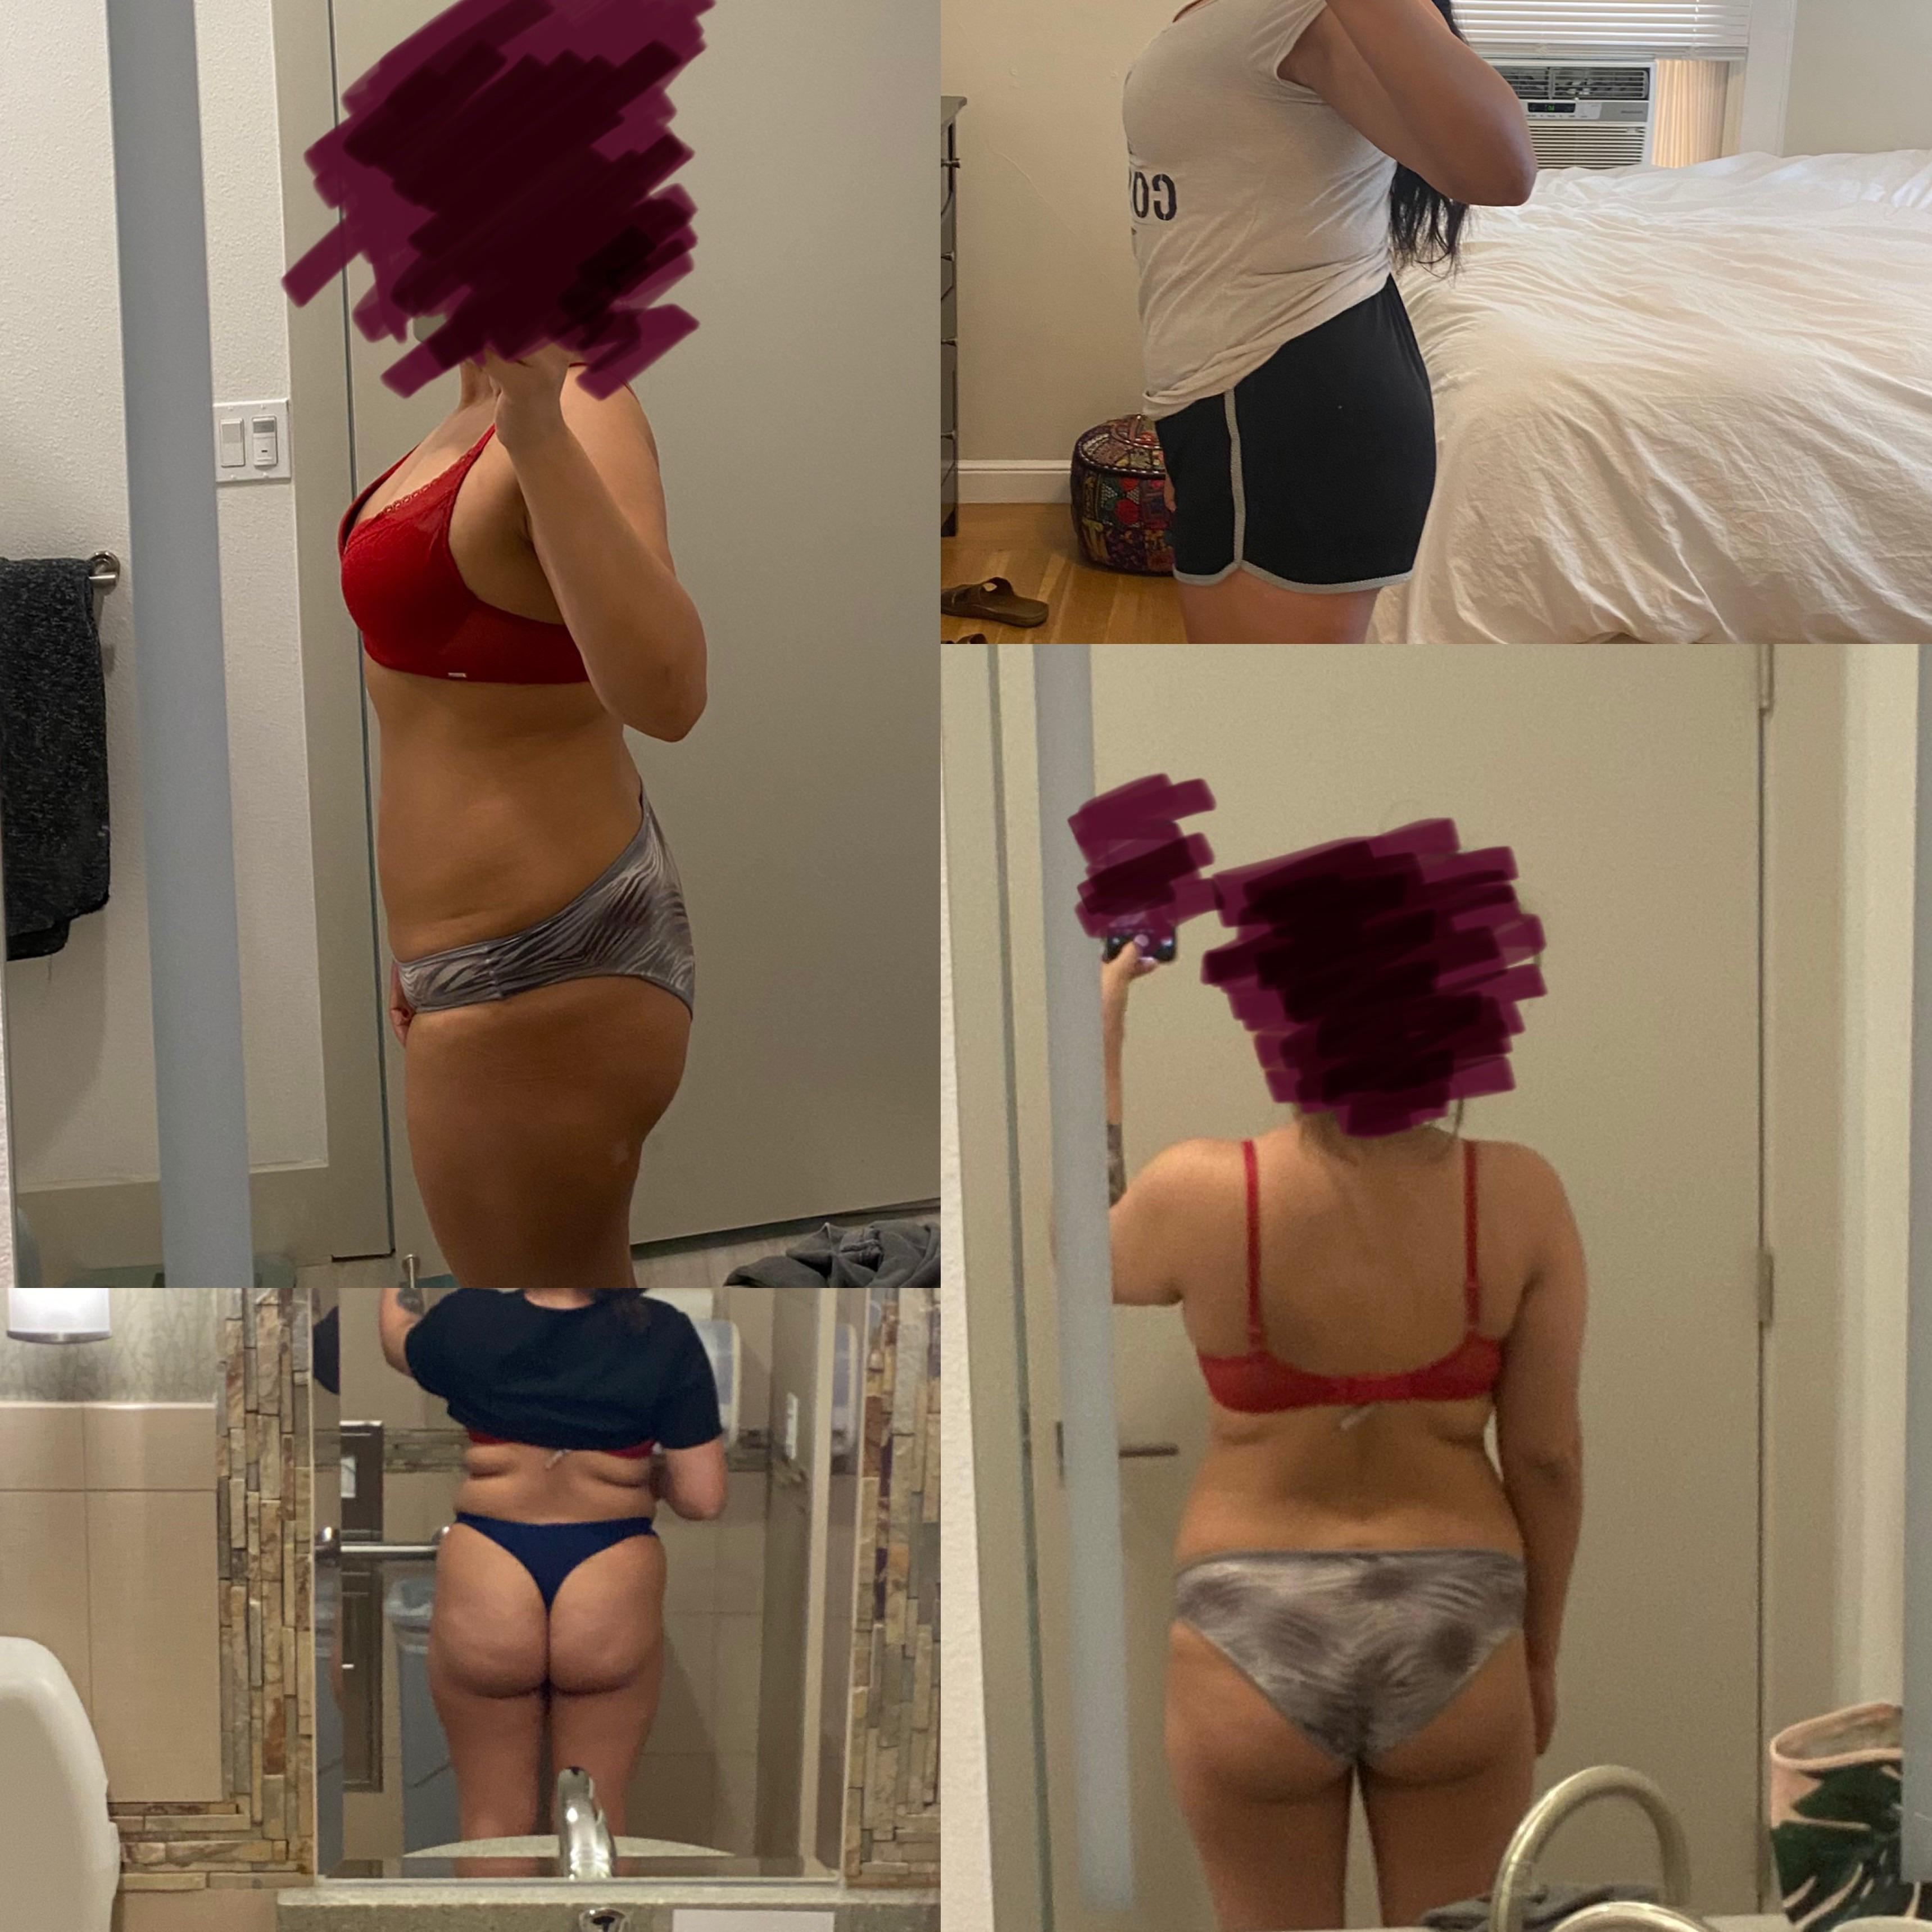 5 feet 3 Female Before and After 13 lbs Weight Loss 167 lbs to 154 lbs